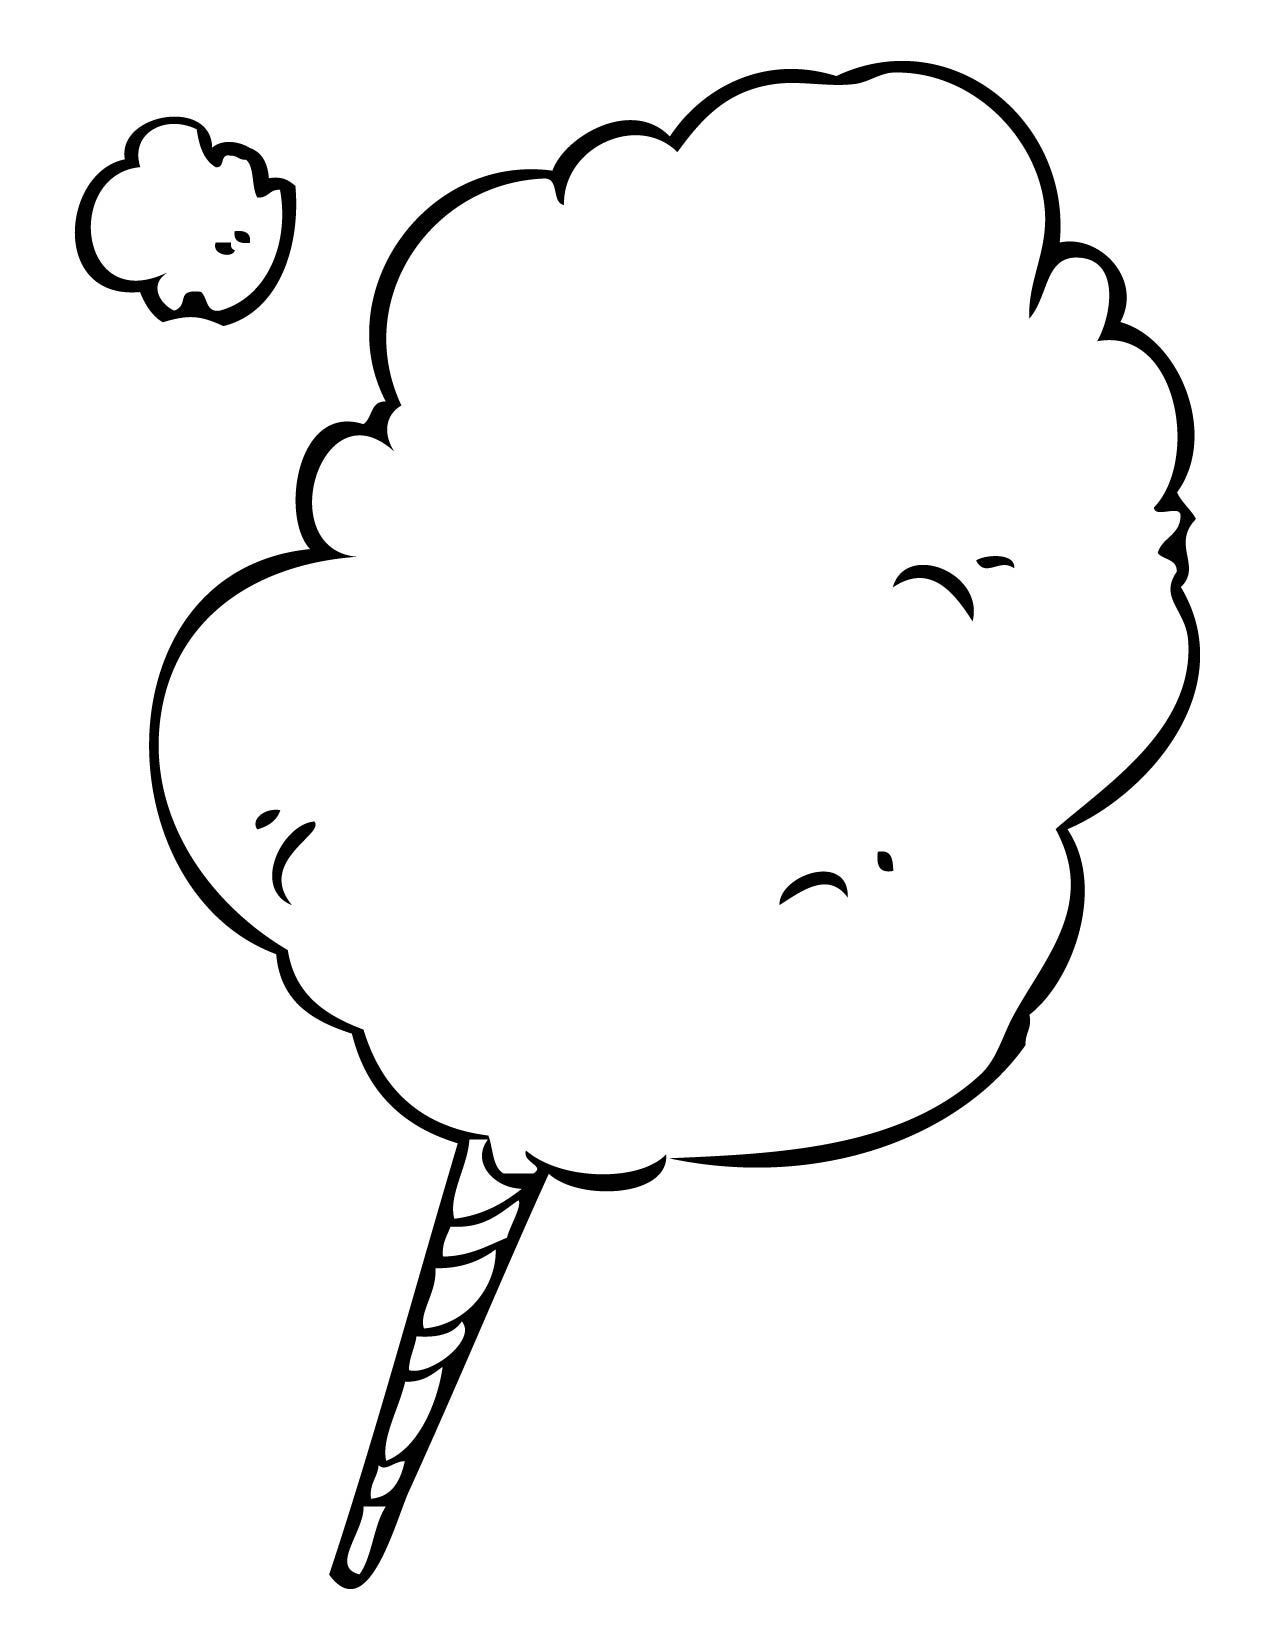 Cotton Candy Clipart Black And White.